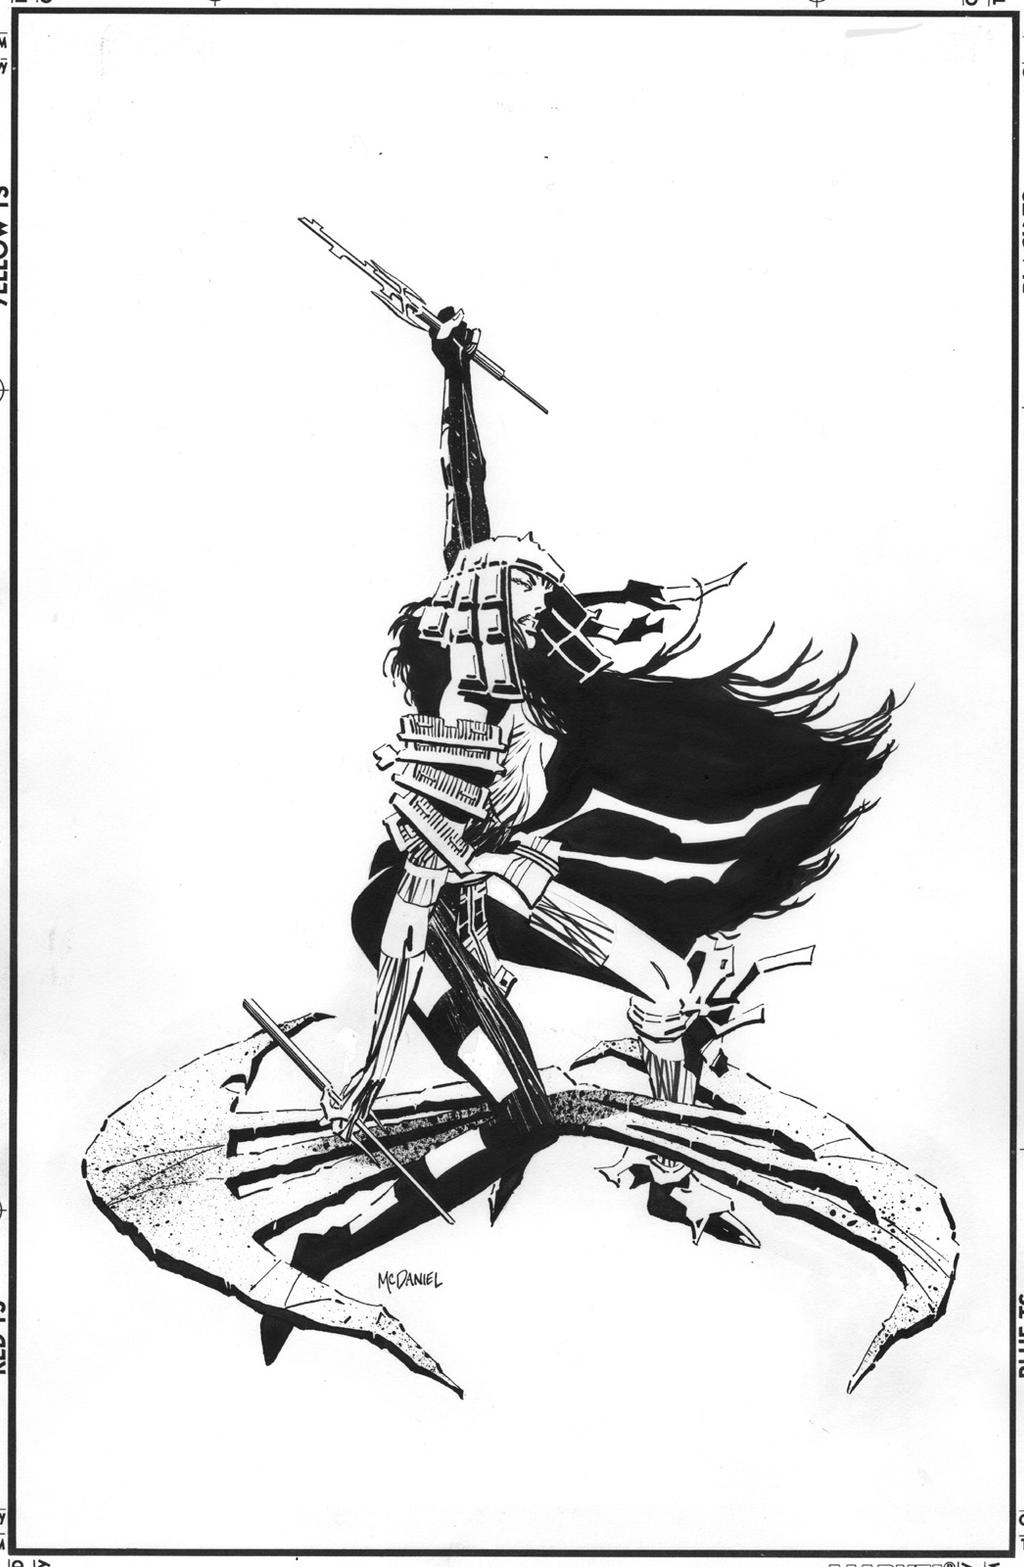 elektra root of evil  4 front cover art by scottmcdaniel